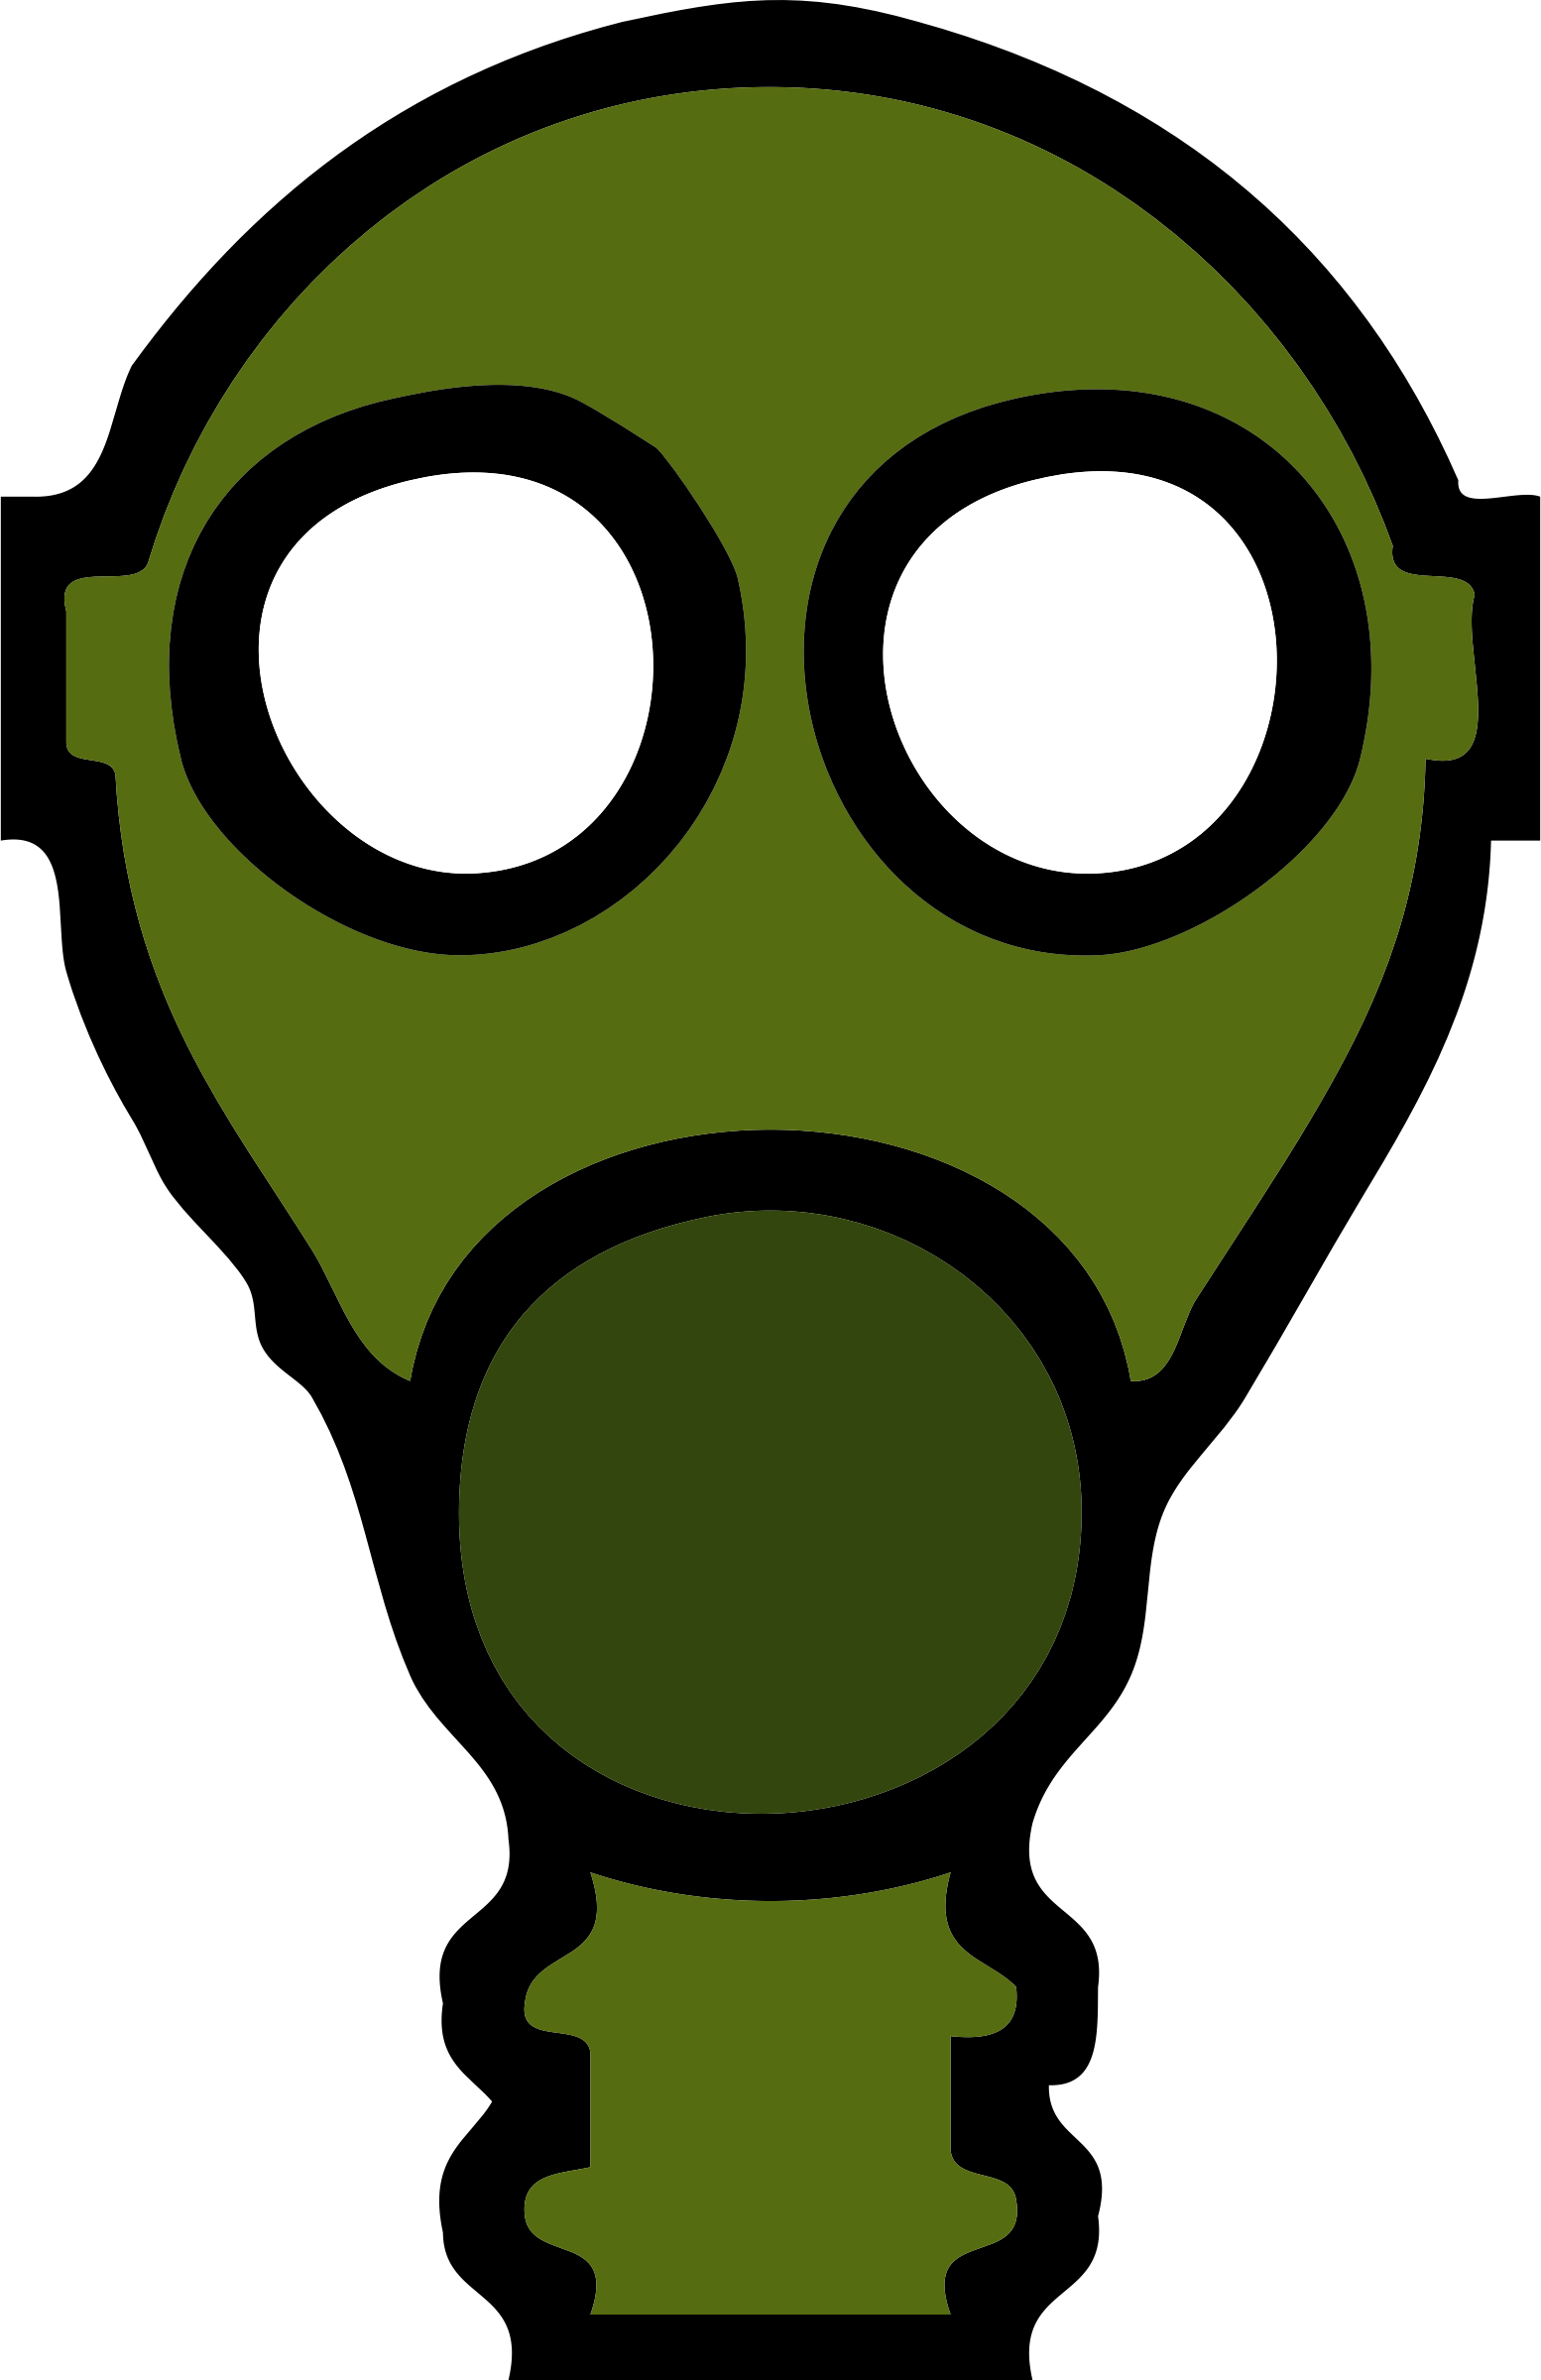 Gas Mask clipart ww1 Mask gas gas mask Clipart